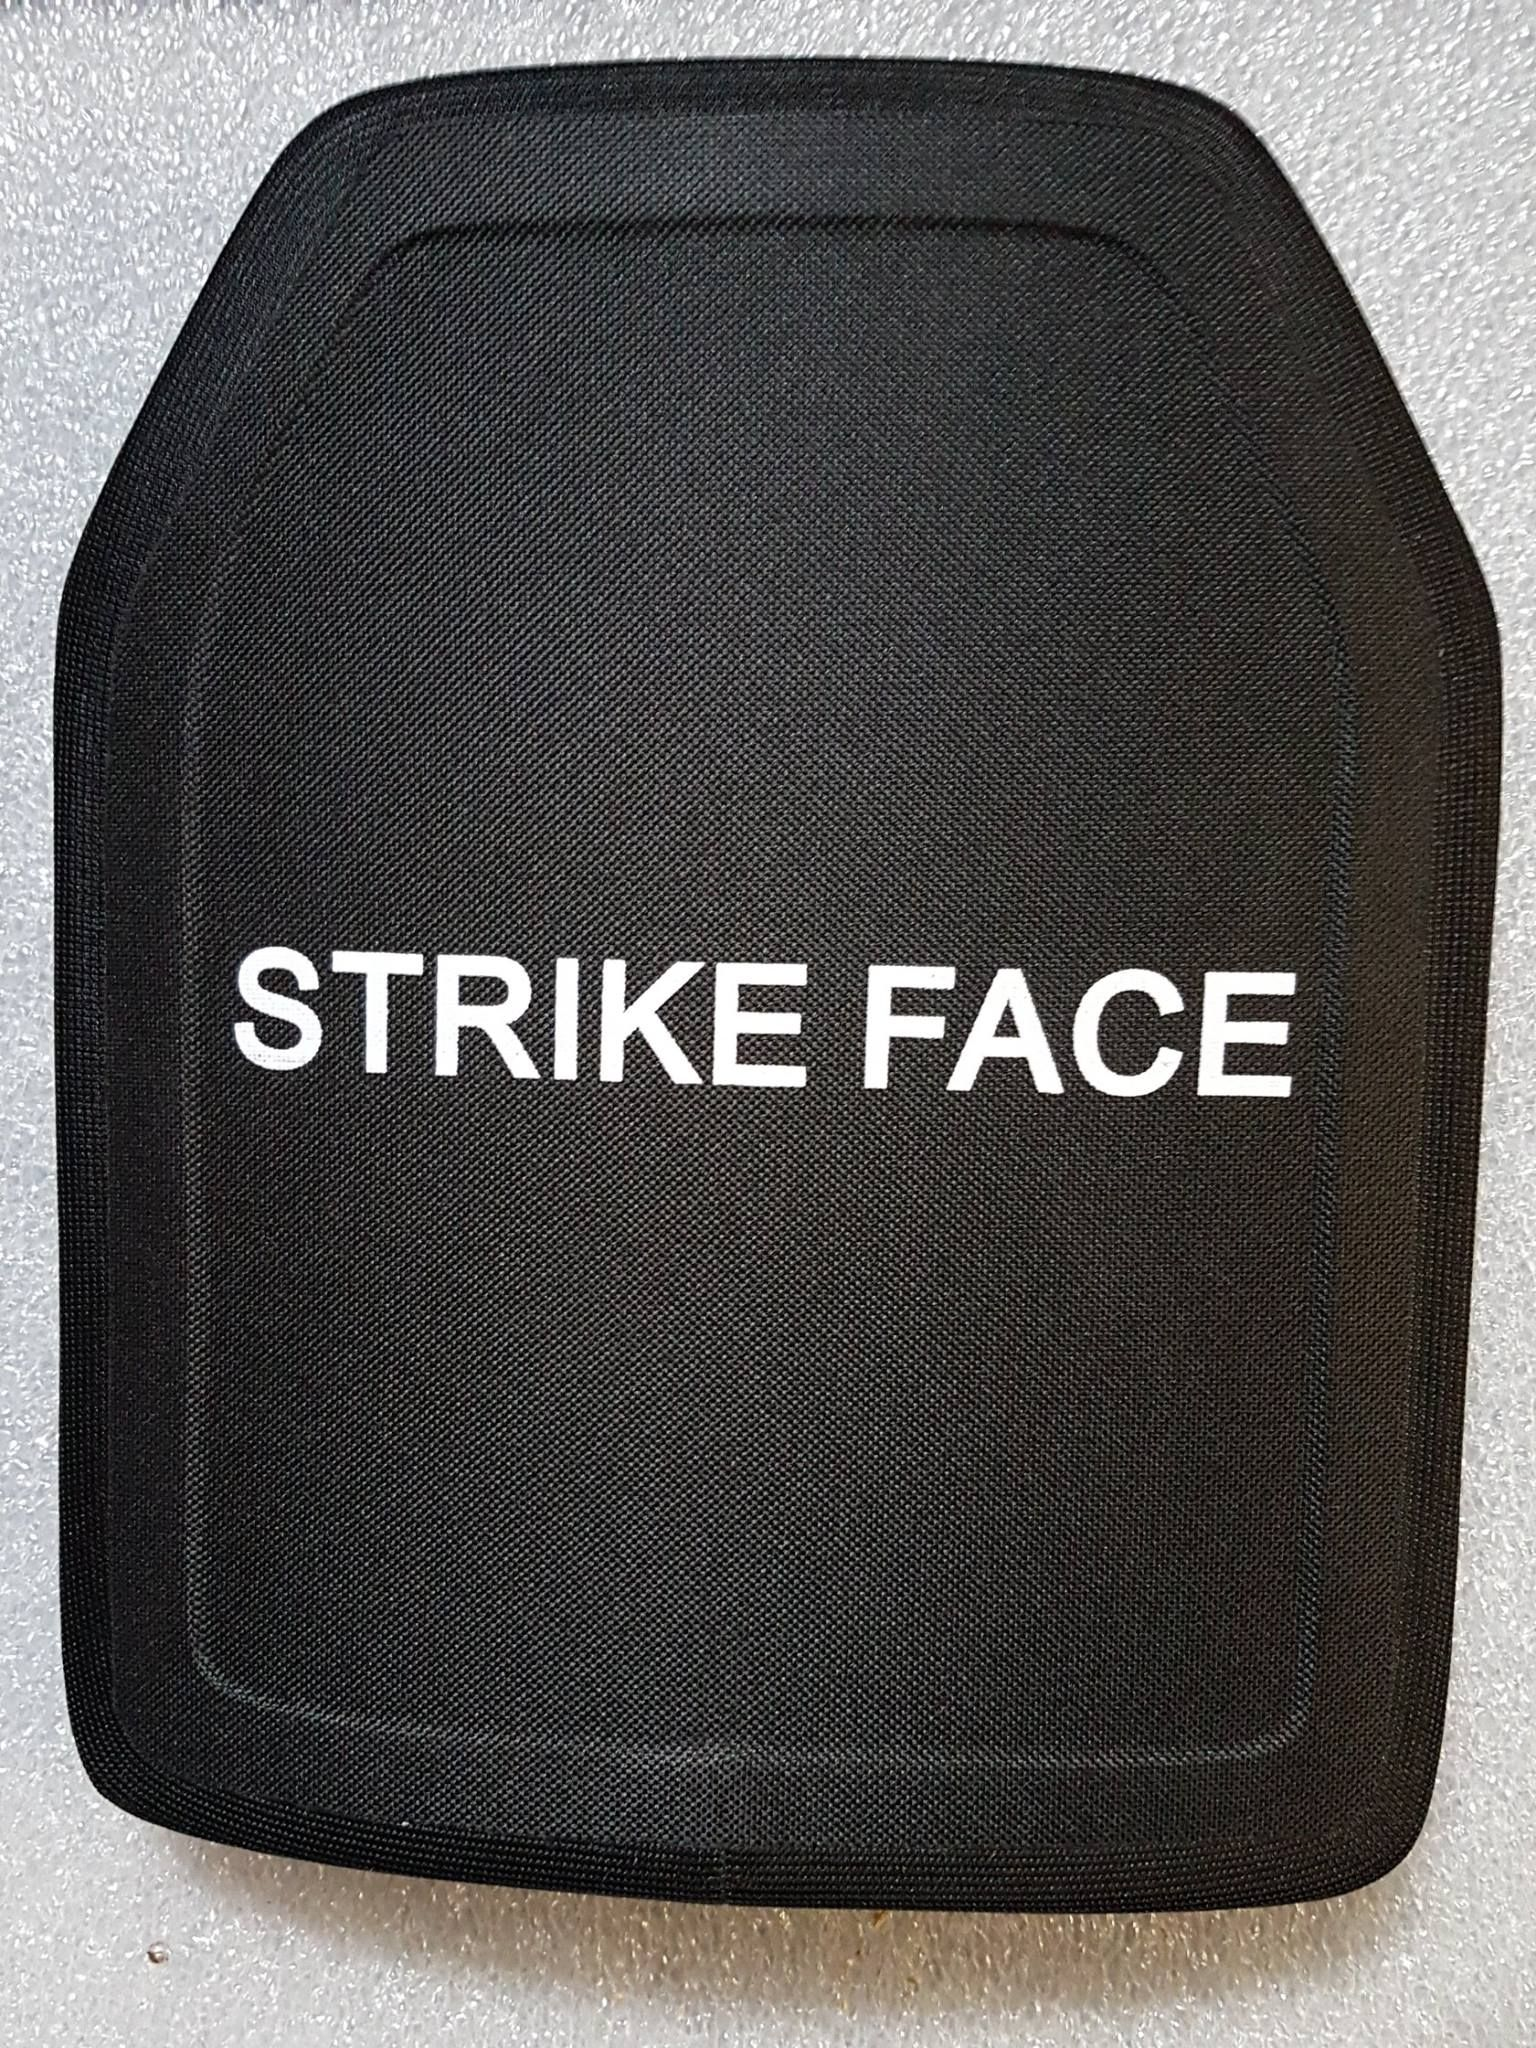 Pin by Body Armour Canada Ltd. on Bulletproof Shields